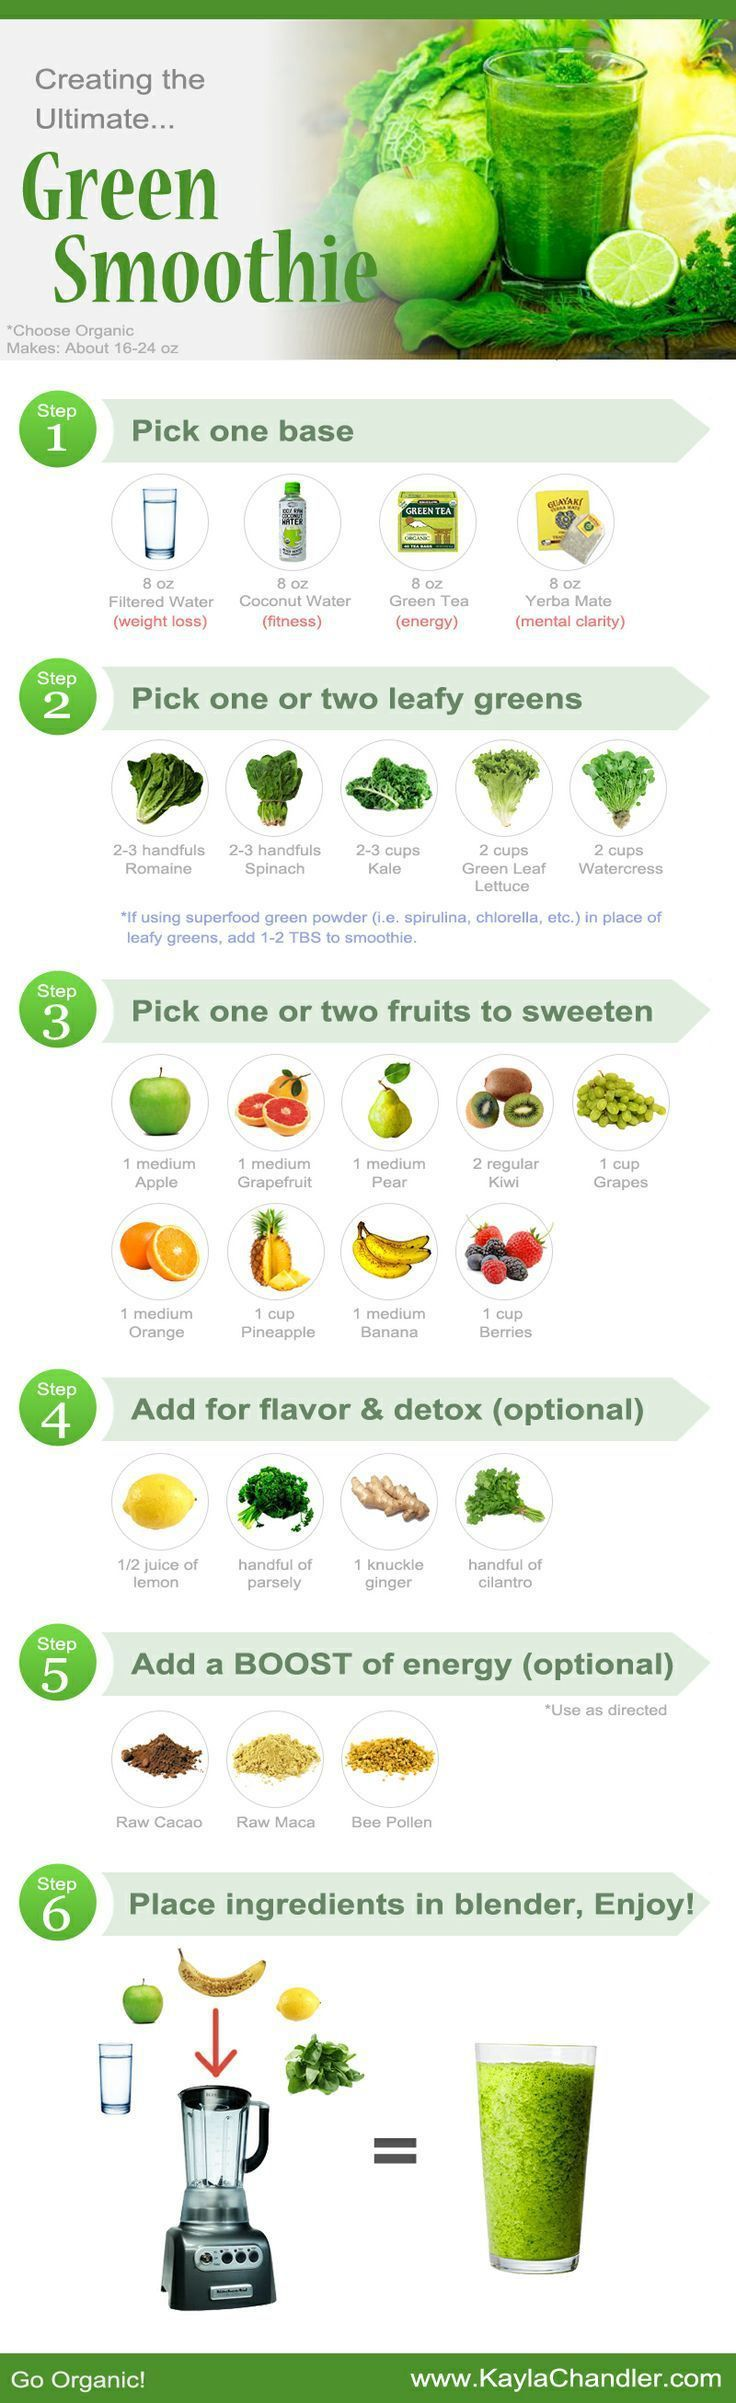 Green Smoothie Ultimate Guide Lose Weight With More Energy http://serenityspagifts.com/product/garcinia-am-review/